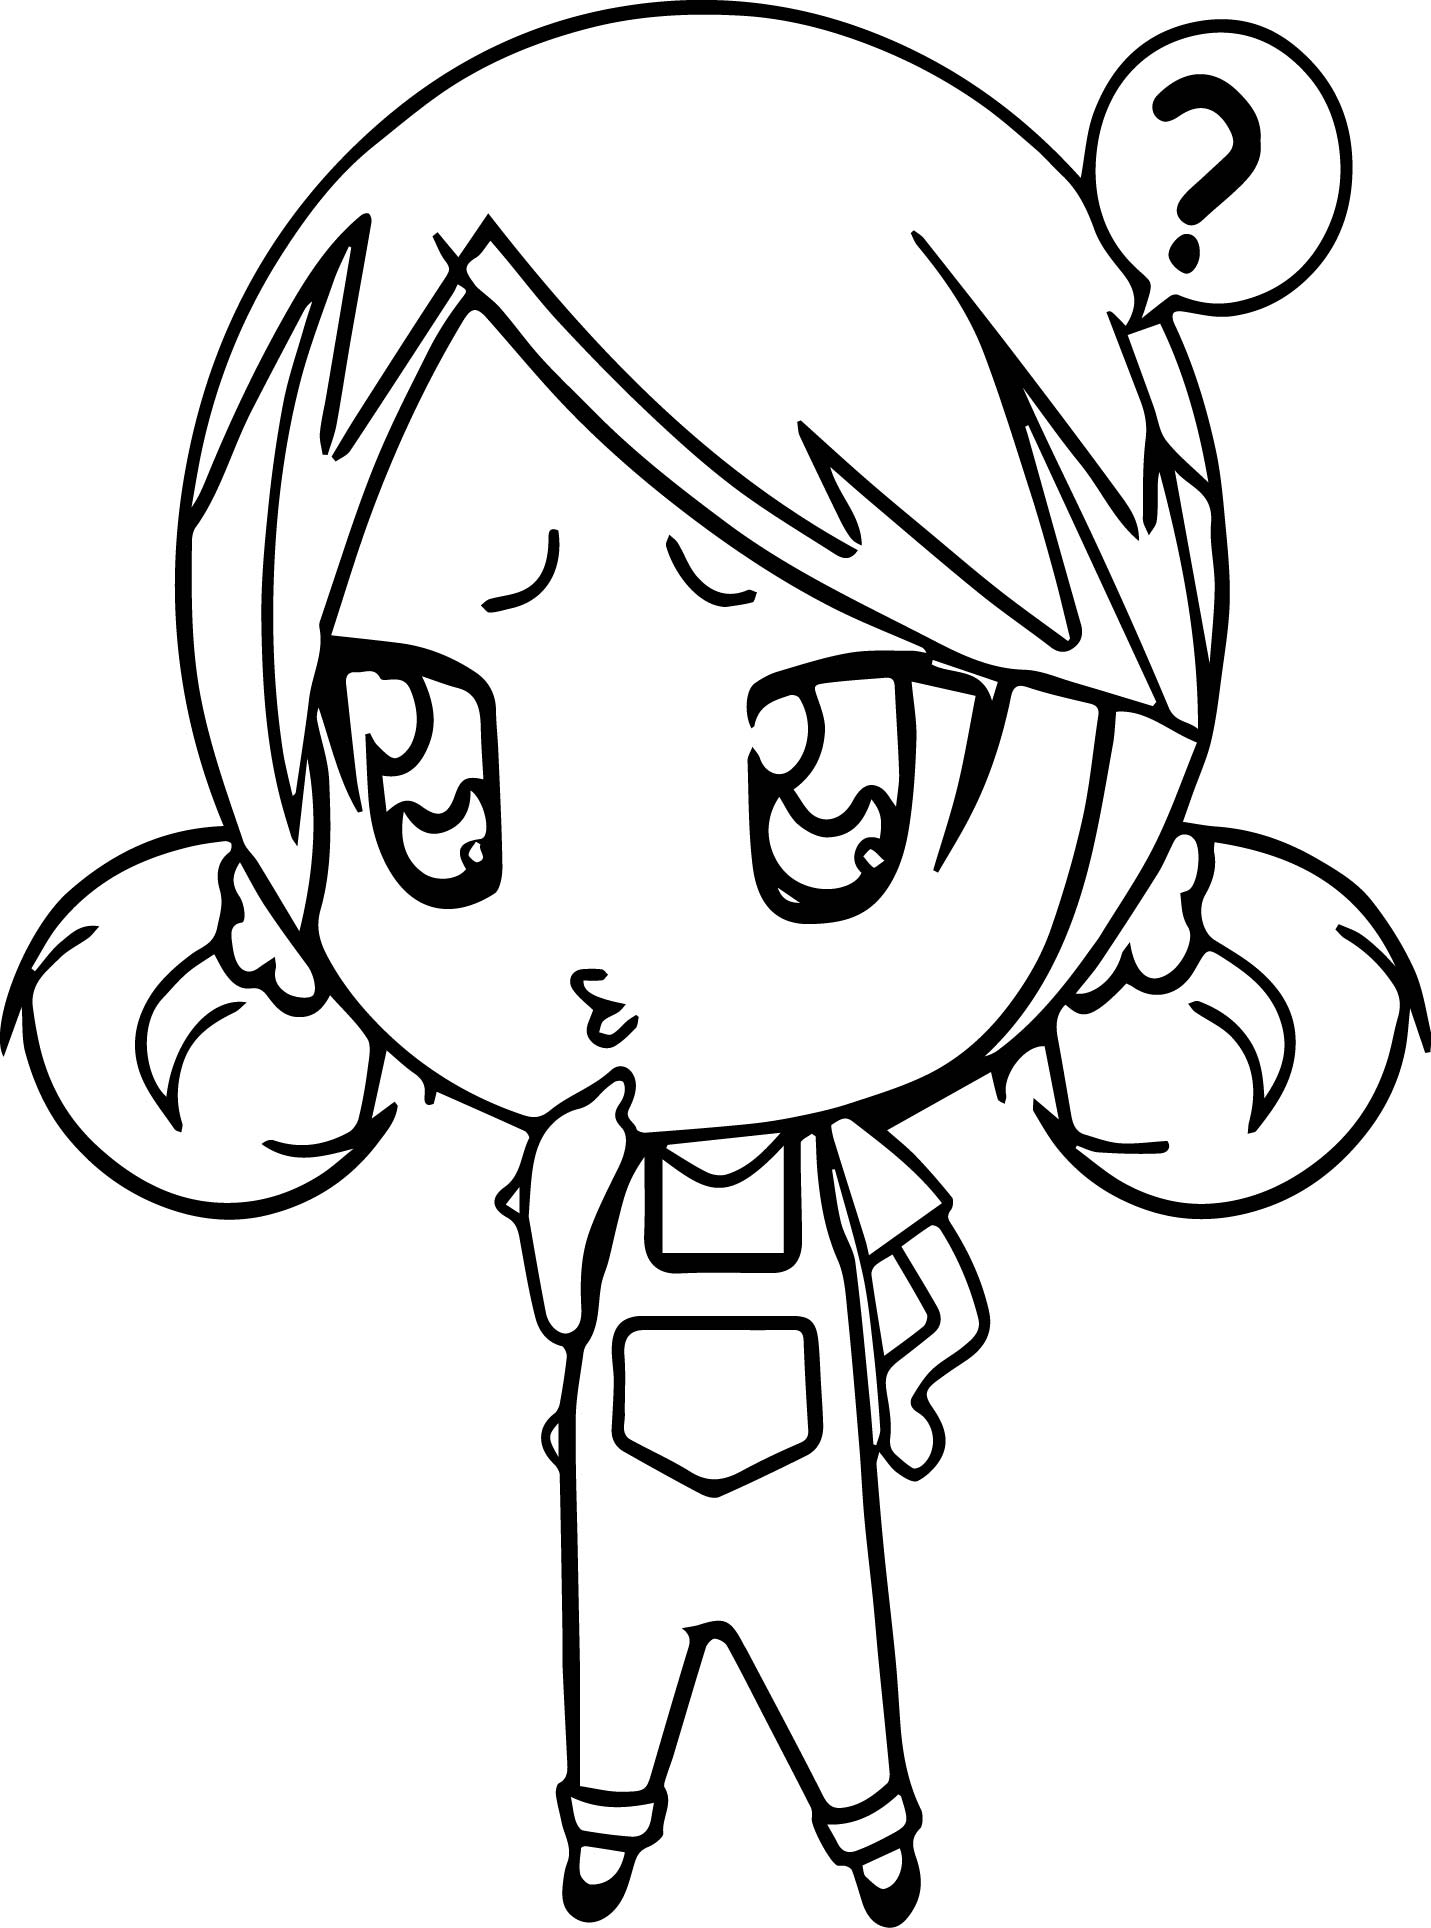 Anime Chibi Girl Coloring Page